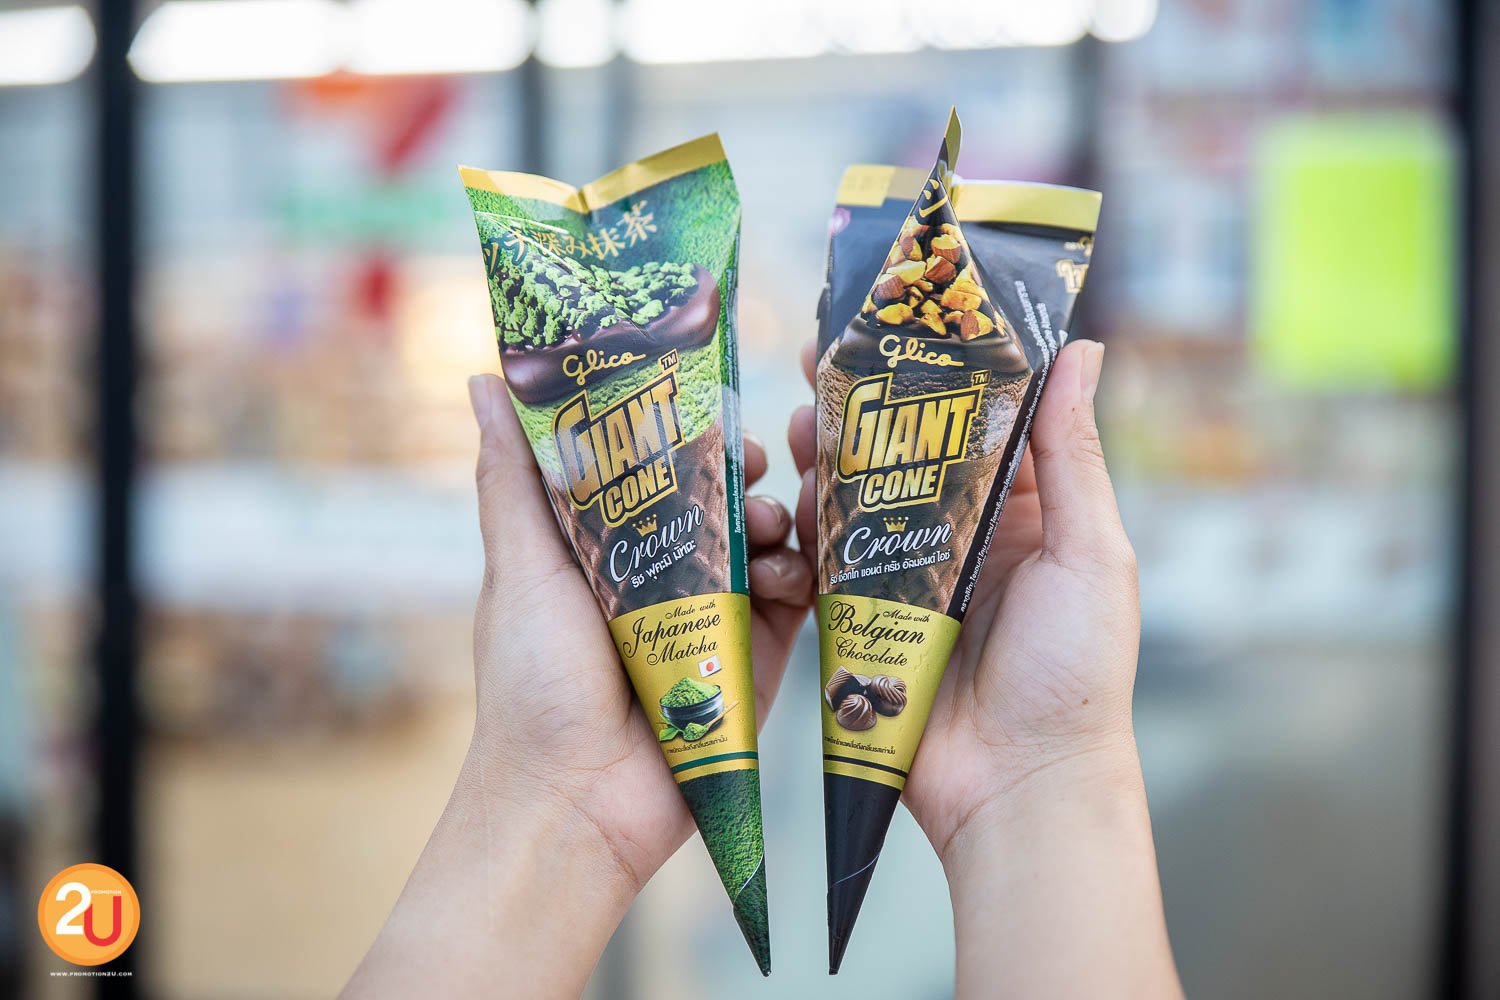 Promotion Gulico Giant Clone Crown Special Discount 30 Baht at 7 11 P01